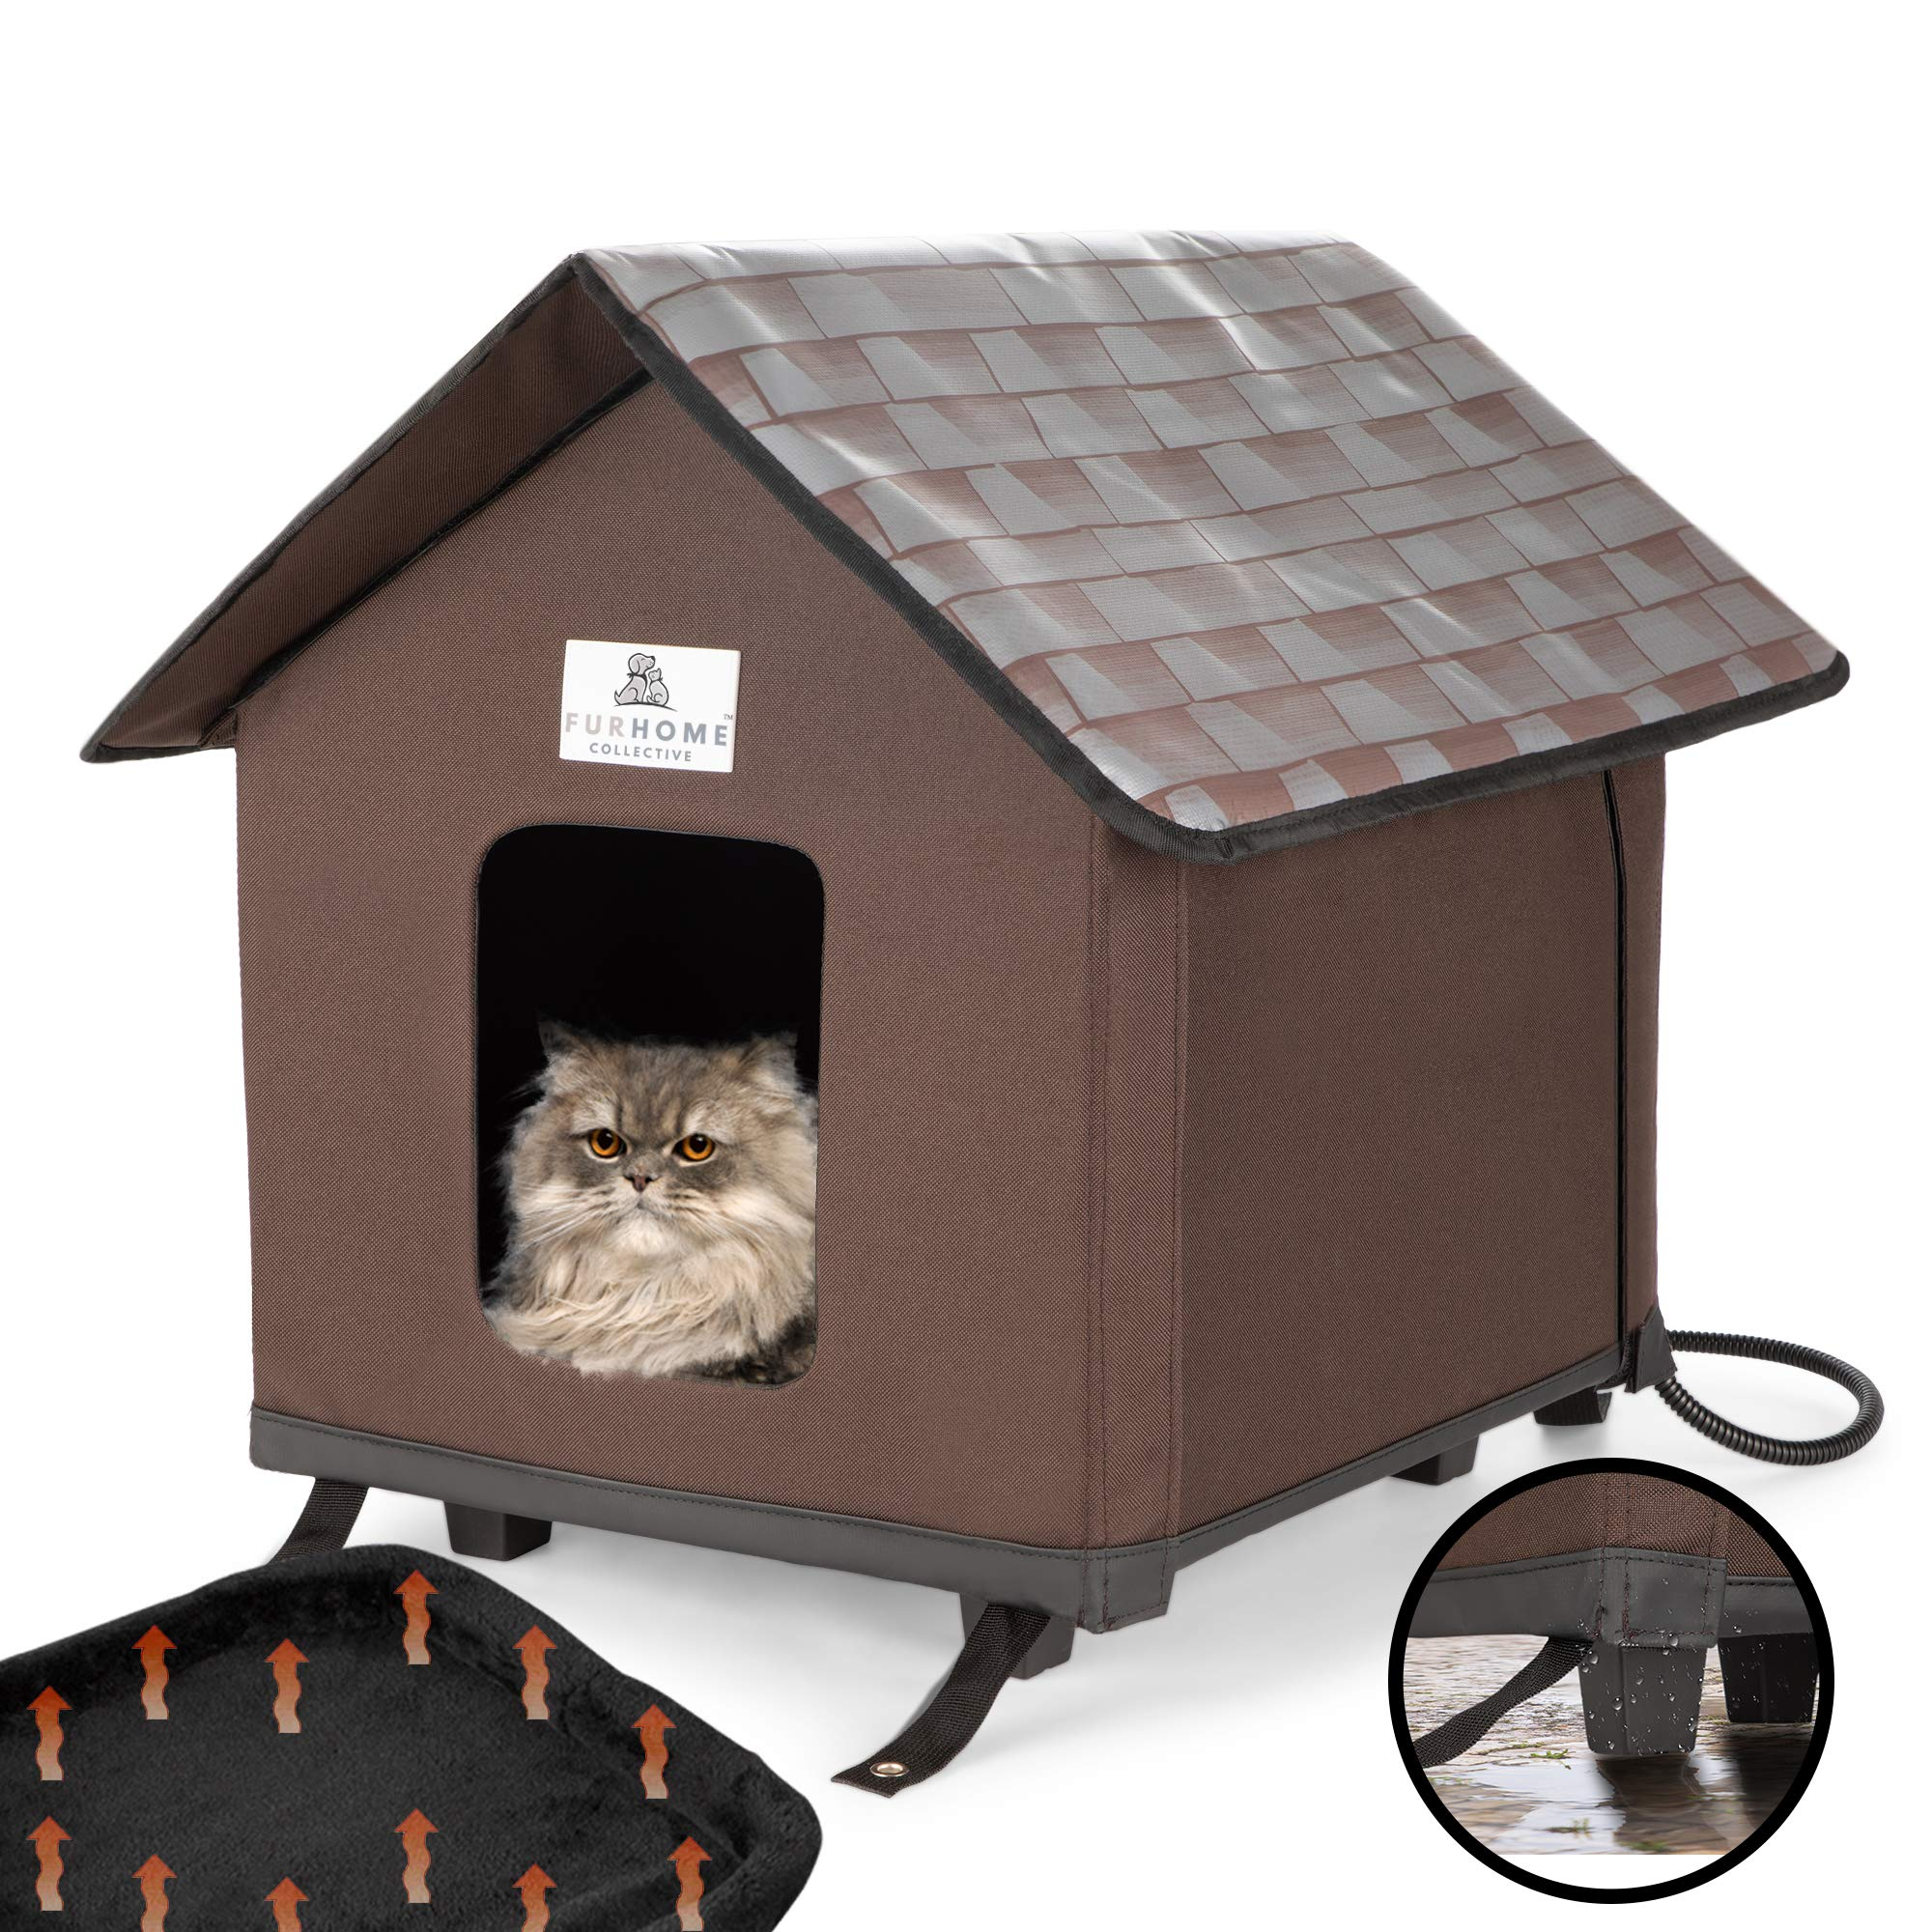 Heated Cat Houses For Indoor And Outdoor Cats Elevated Waterproof And Insulated A Safe Pet House And Kitty Shelter For Your Cat Or Small Dog To Stay Warm And Dry A Bed